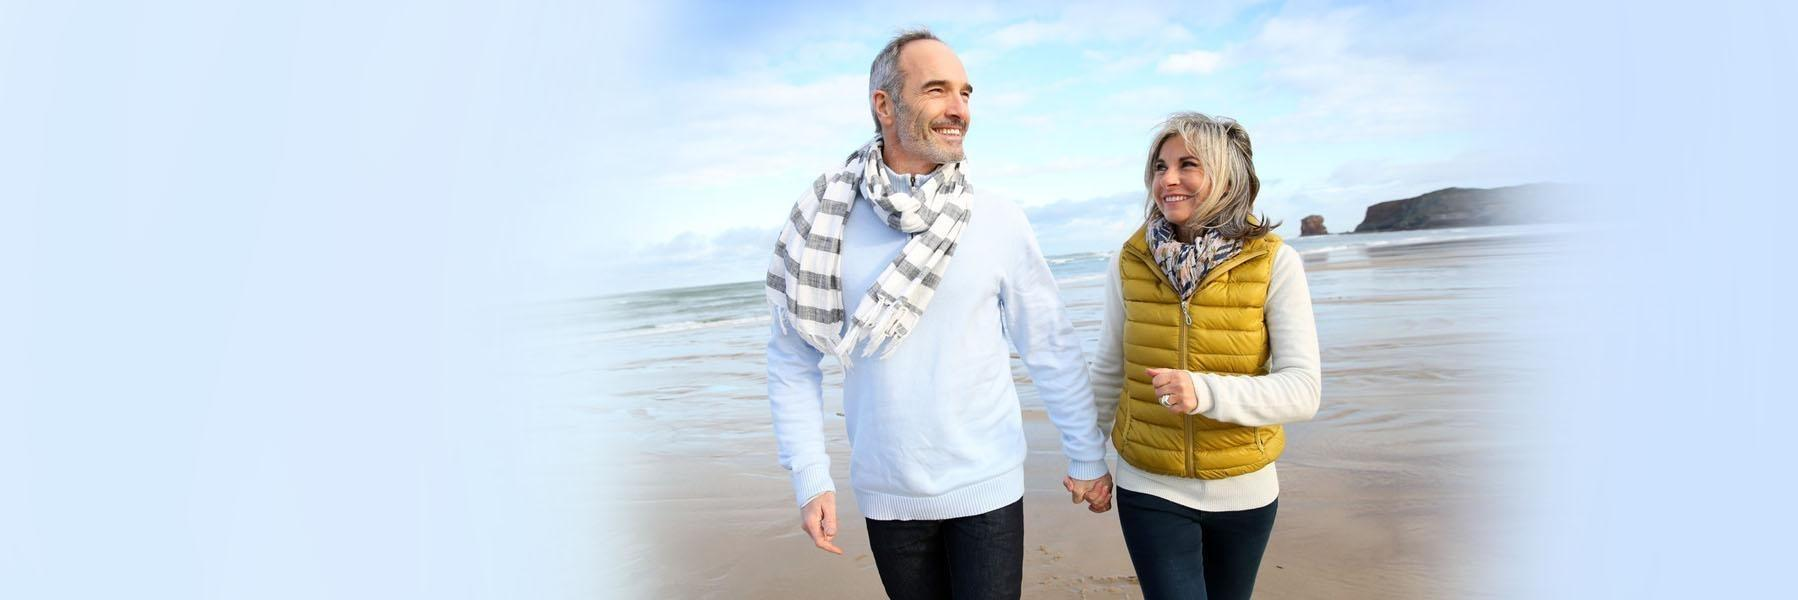 older couple smiling walking on a beach l Drs. Gladnick and Justison pike creek de